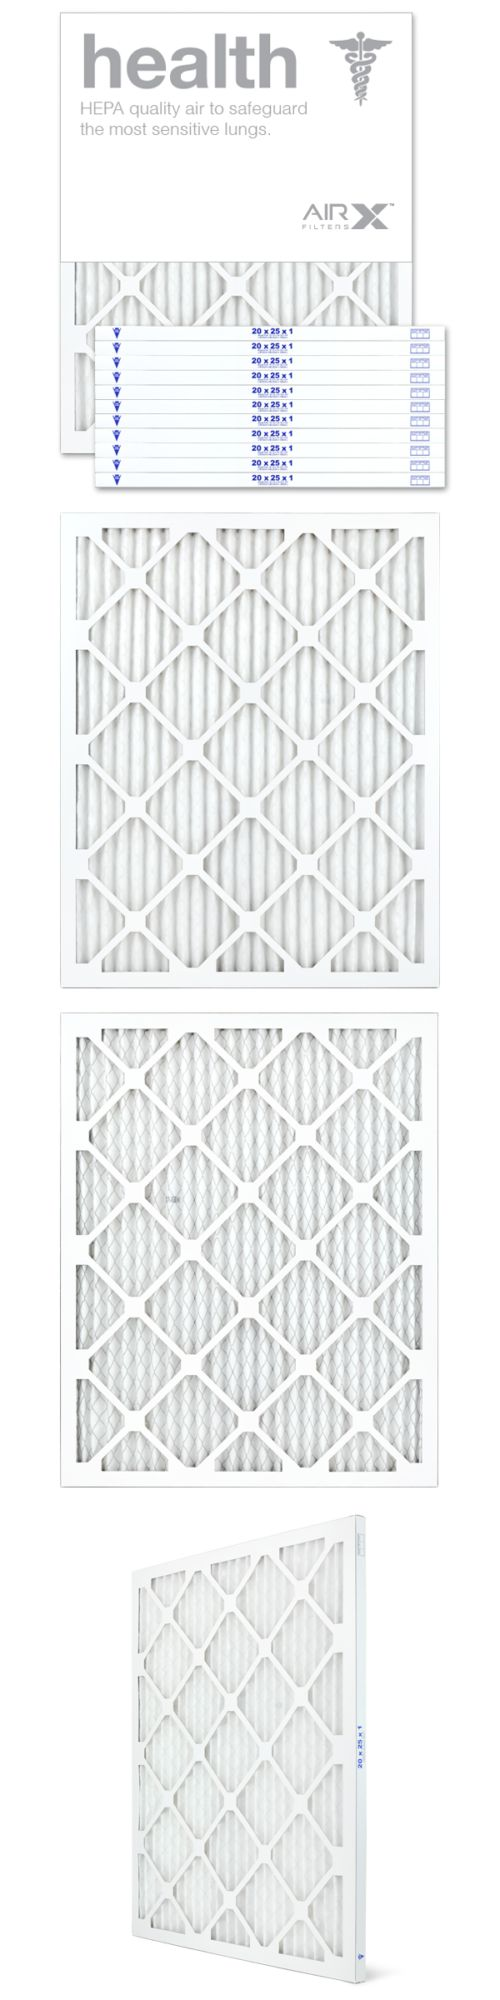 Pin On Air Filters 43509